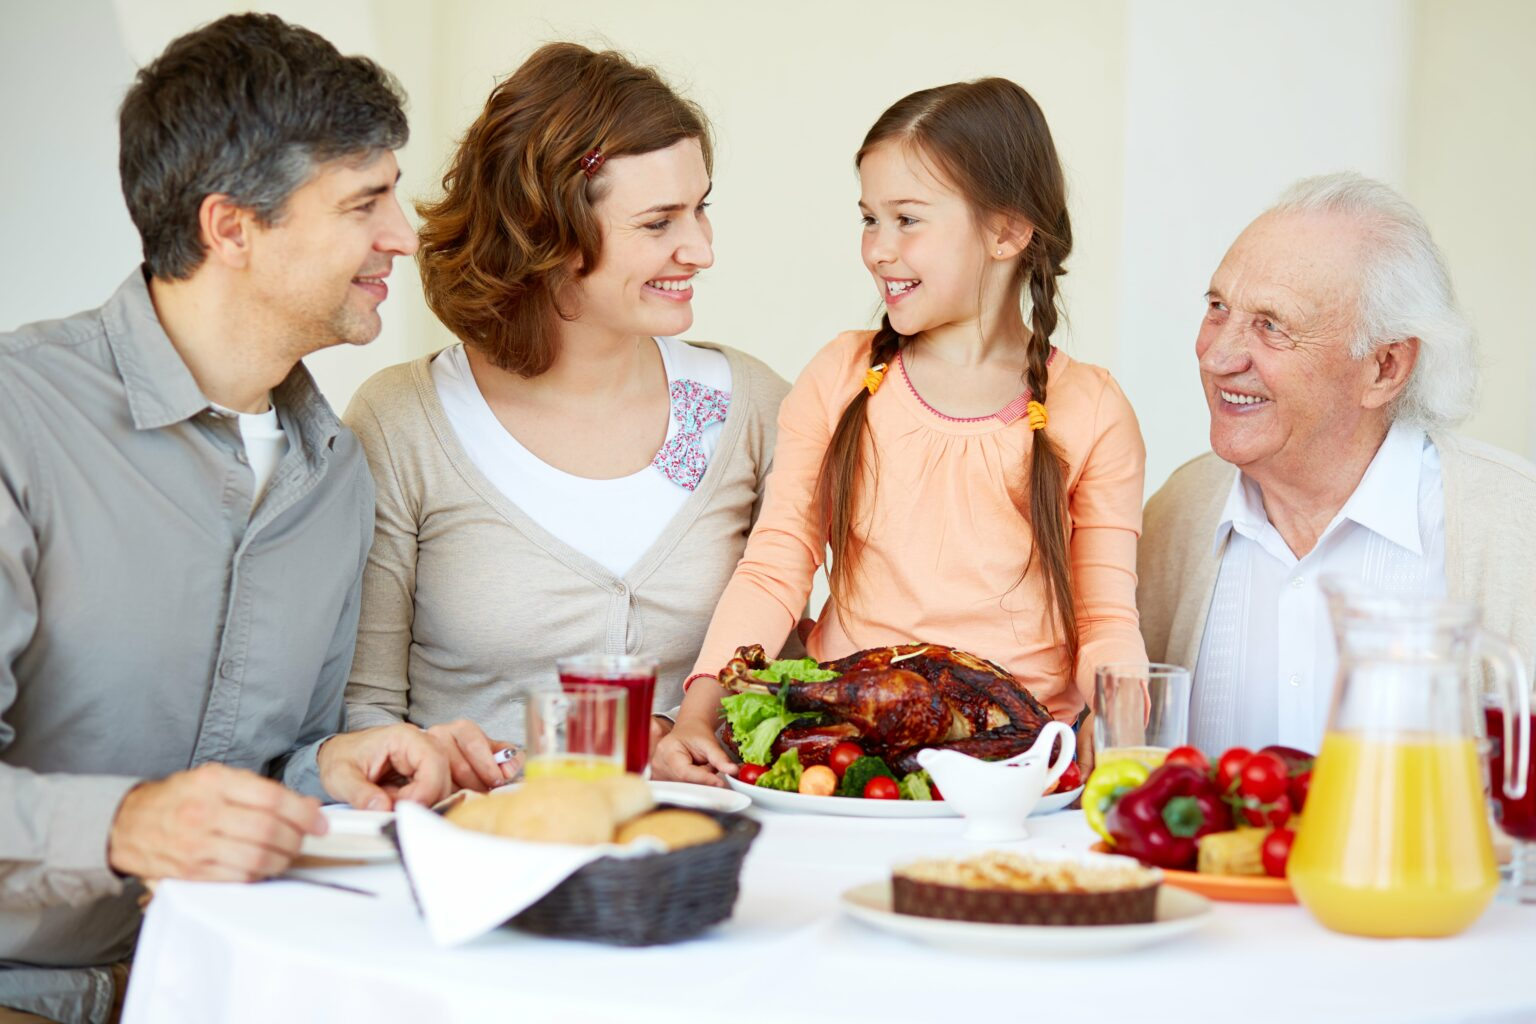 5 Tips for navigating COVID Thanksgiving without gaining weight